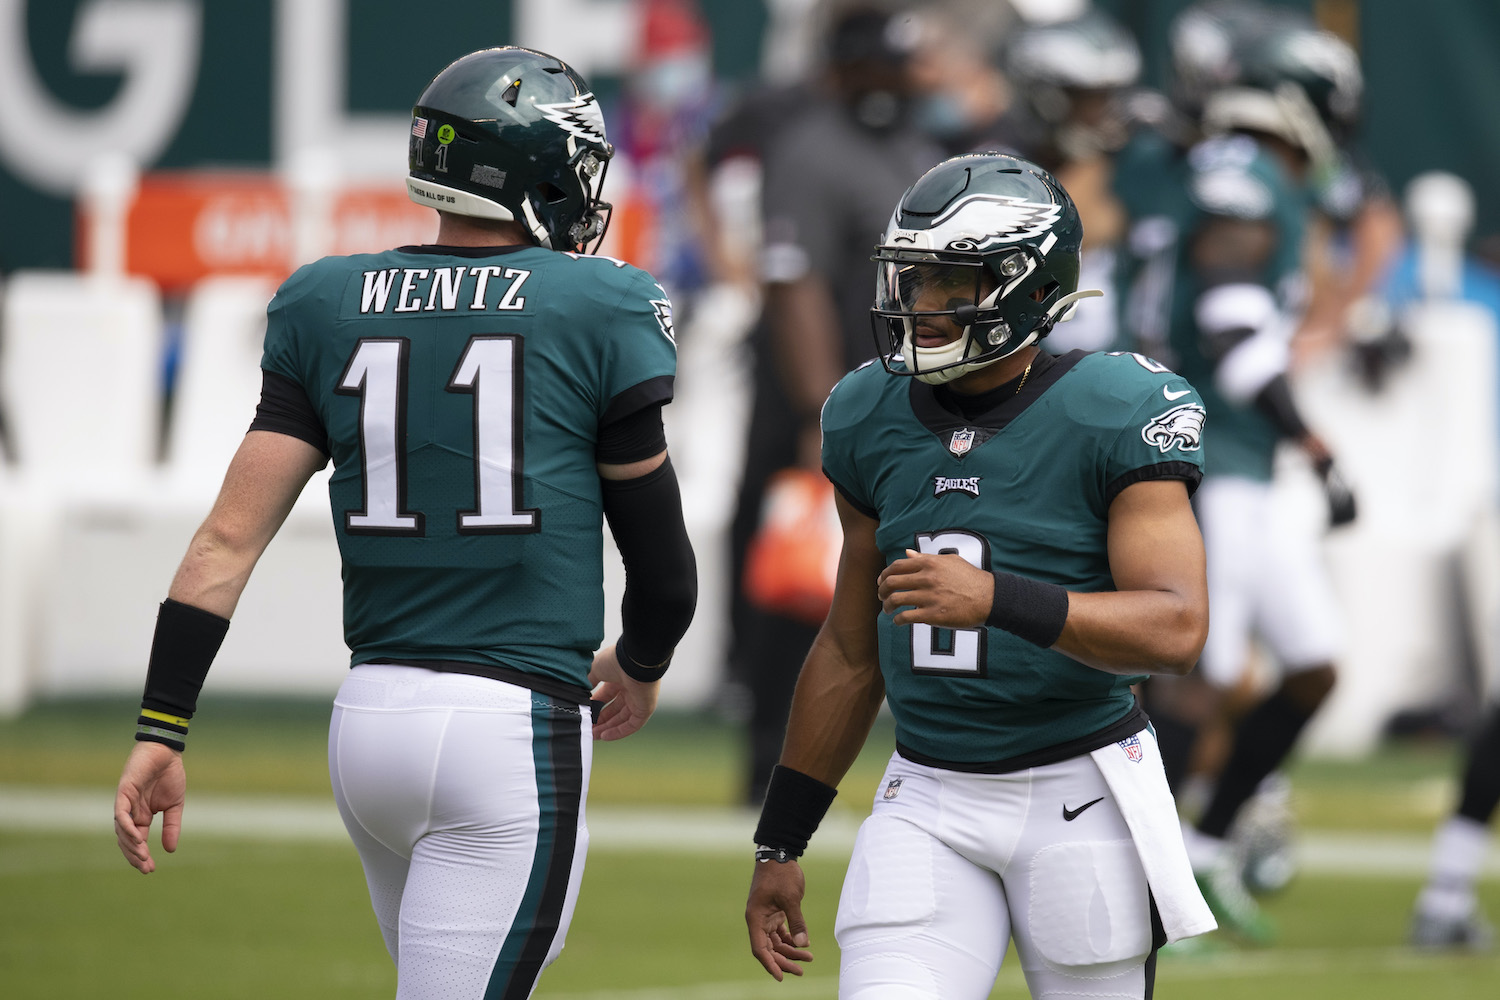 Carson Wentz has been mediocre and Jalen Hurts has been lightly used as the Eagles struggle to figure out their QB situtation.